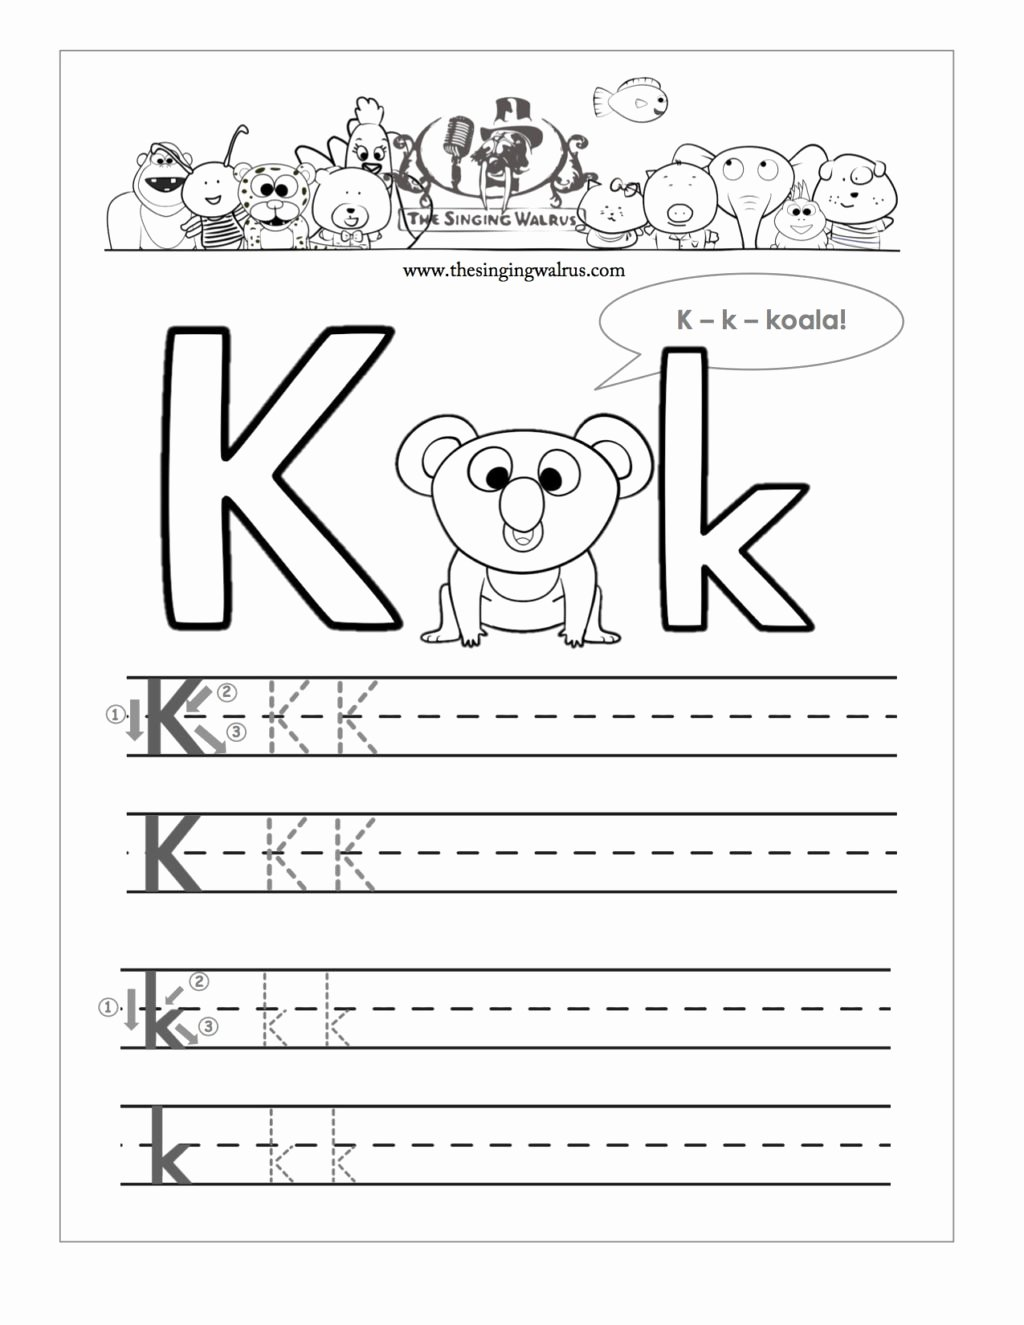 Worksheets for Preschoolers On Letters Best Of Worksheet Free Printable Letter K Barka astonishing